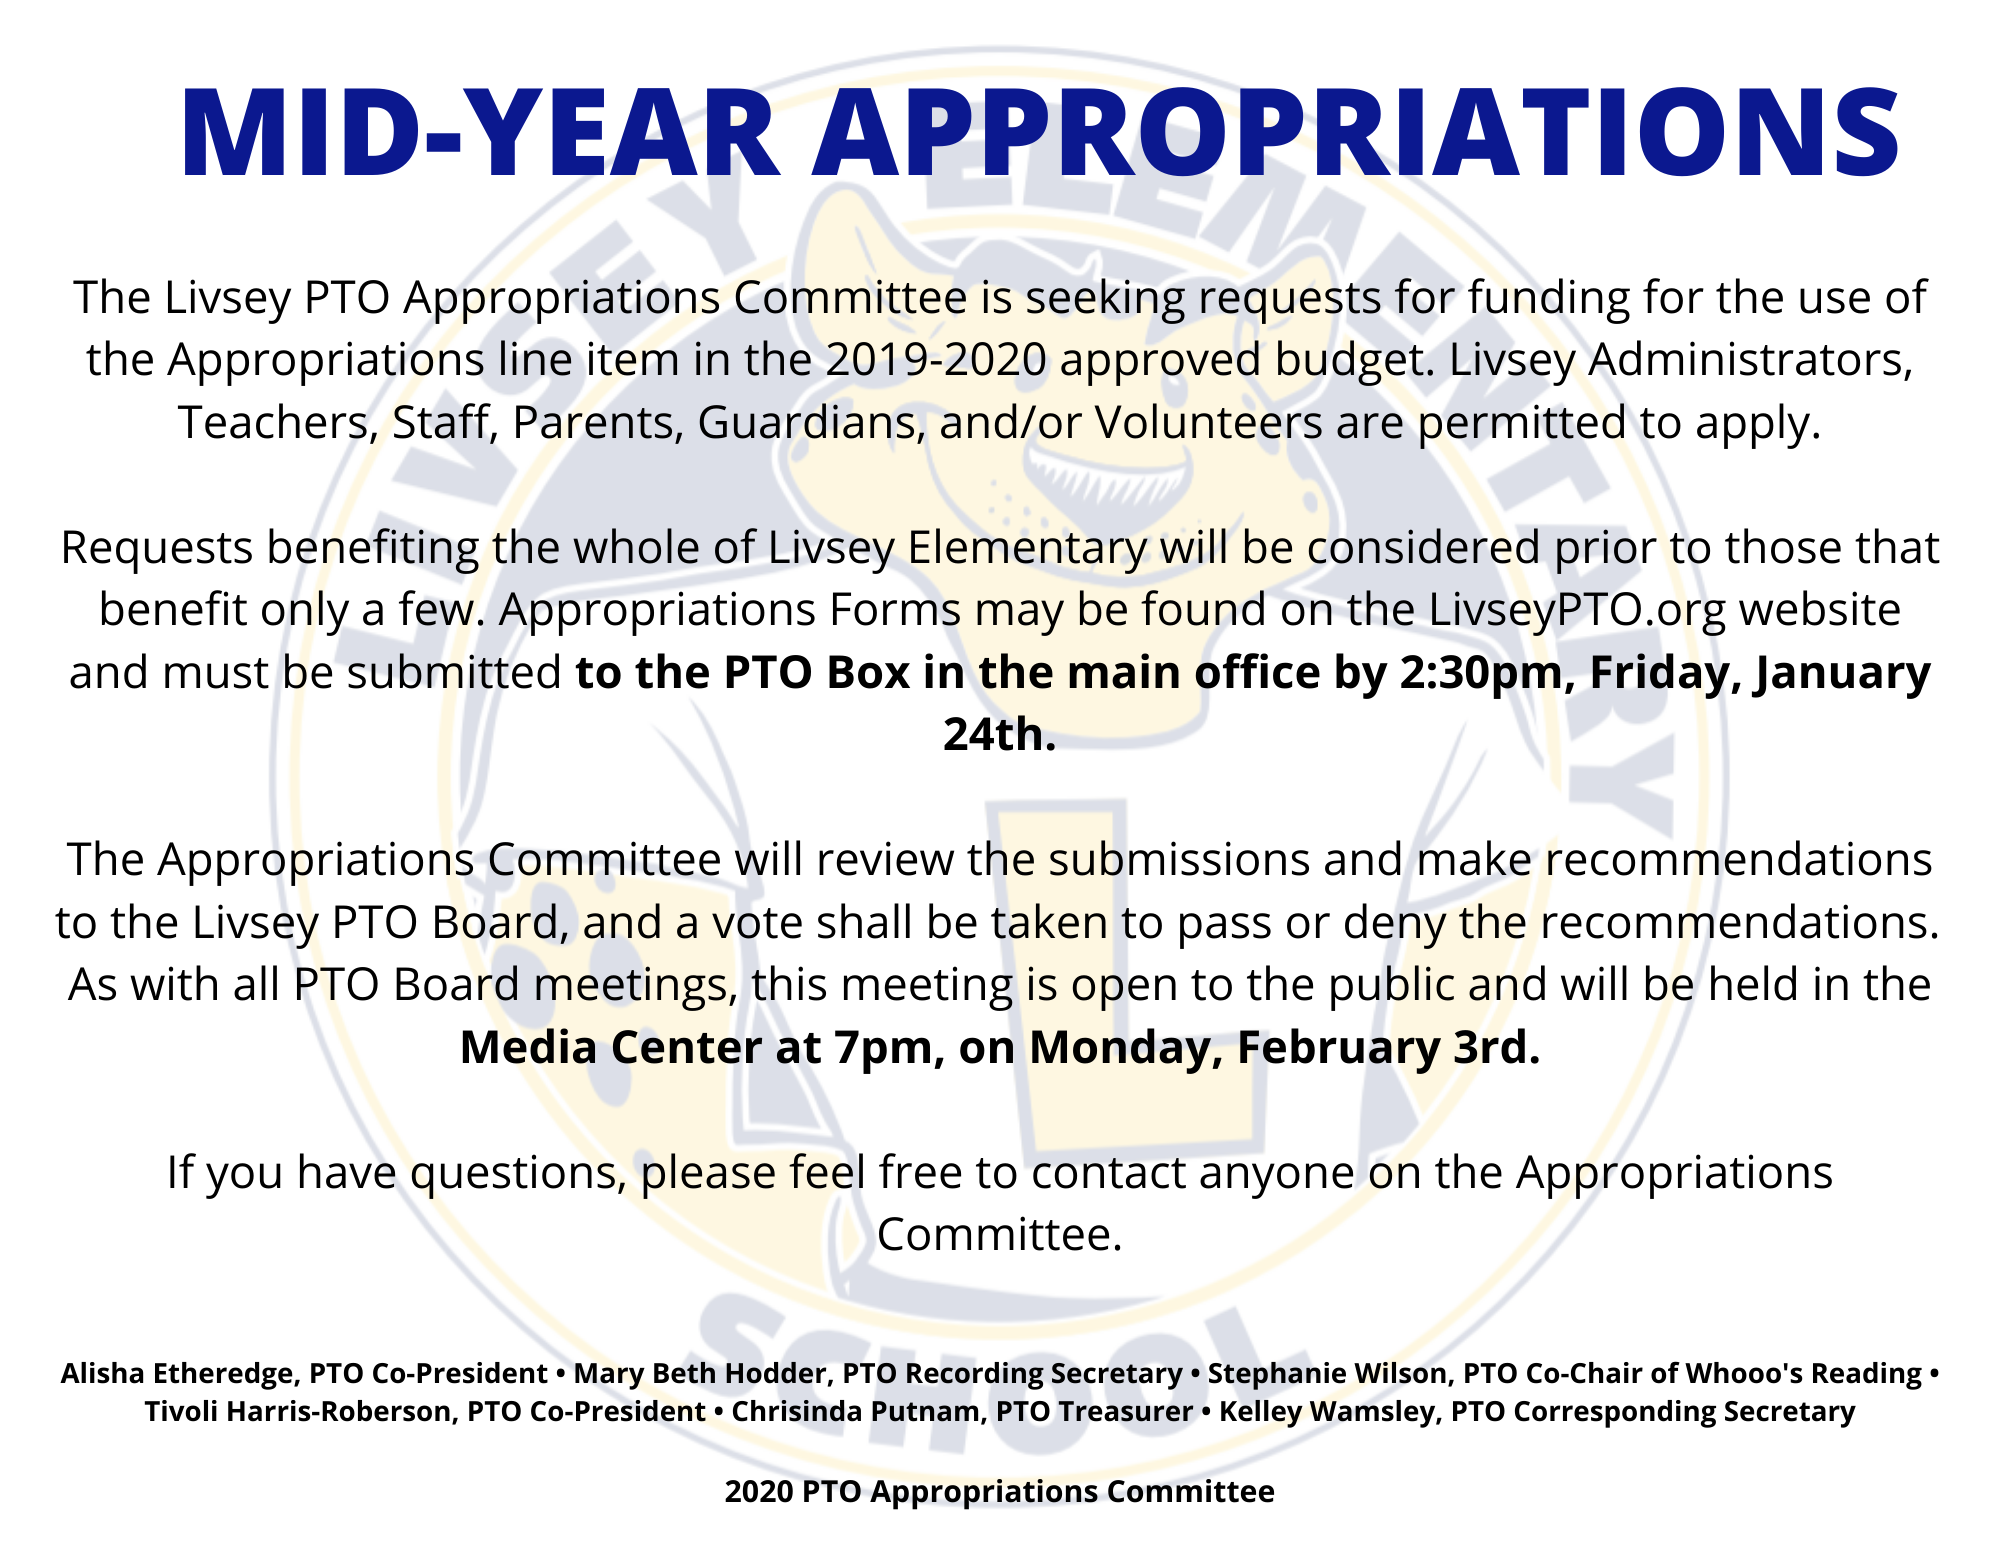 Approp Requests Due Jan 24th